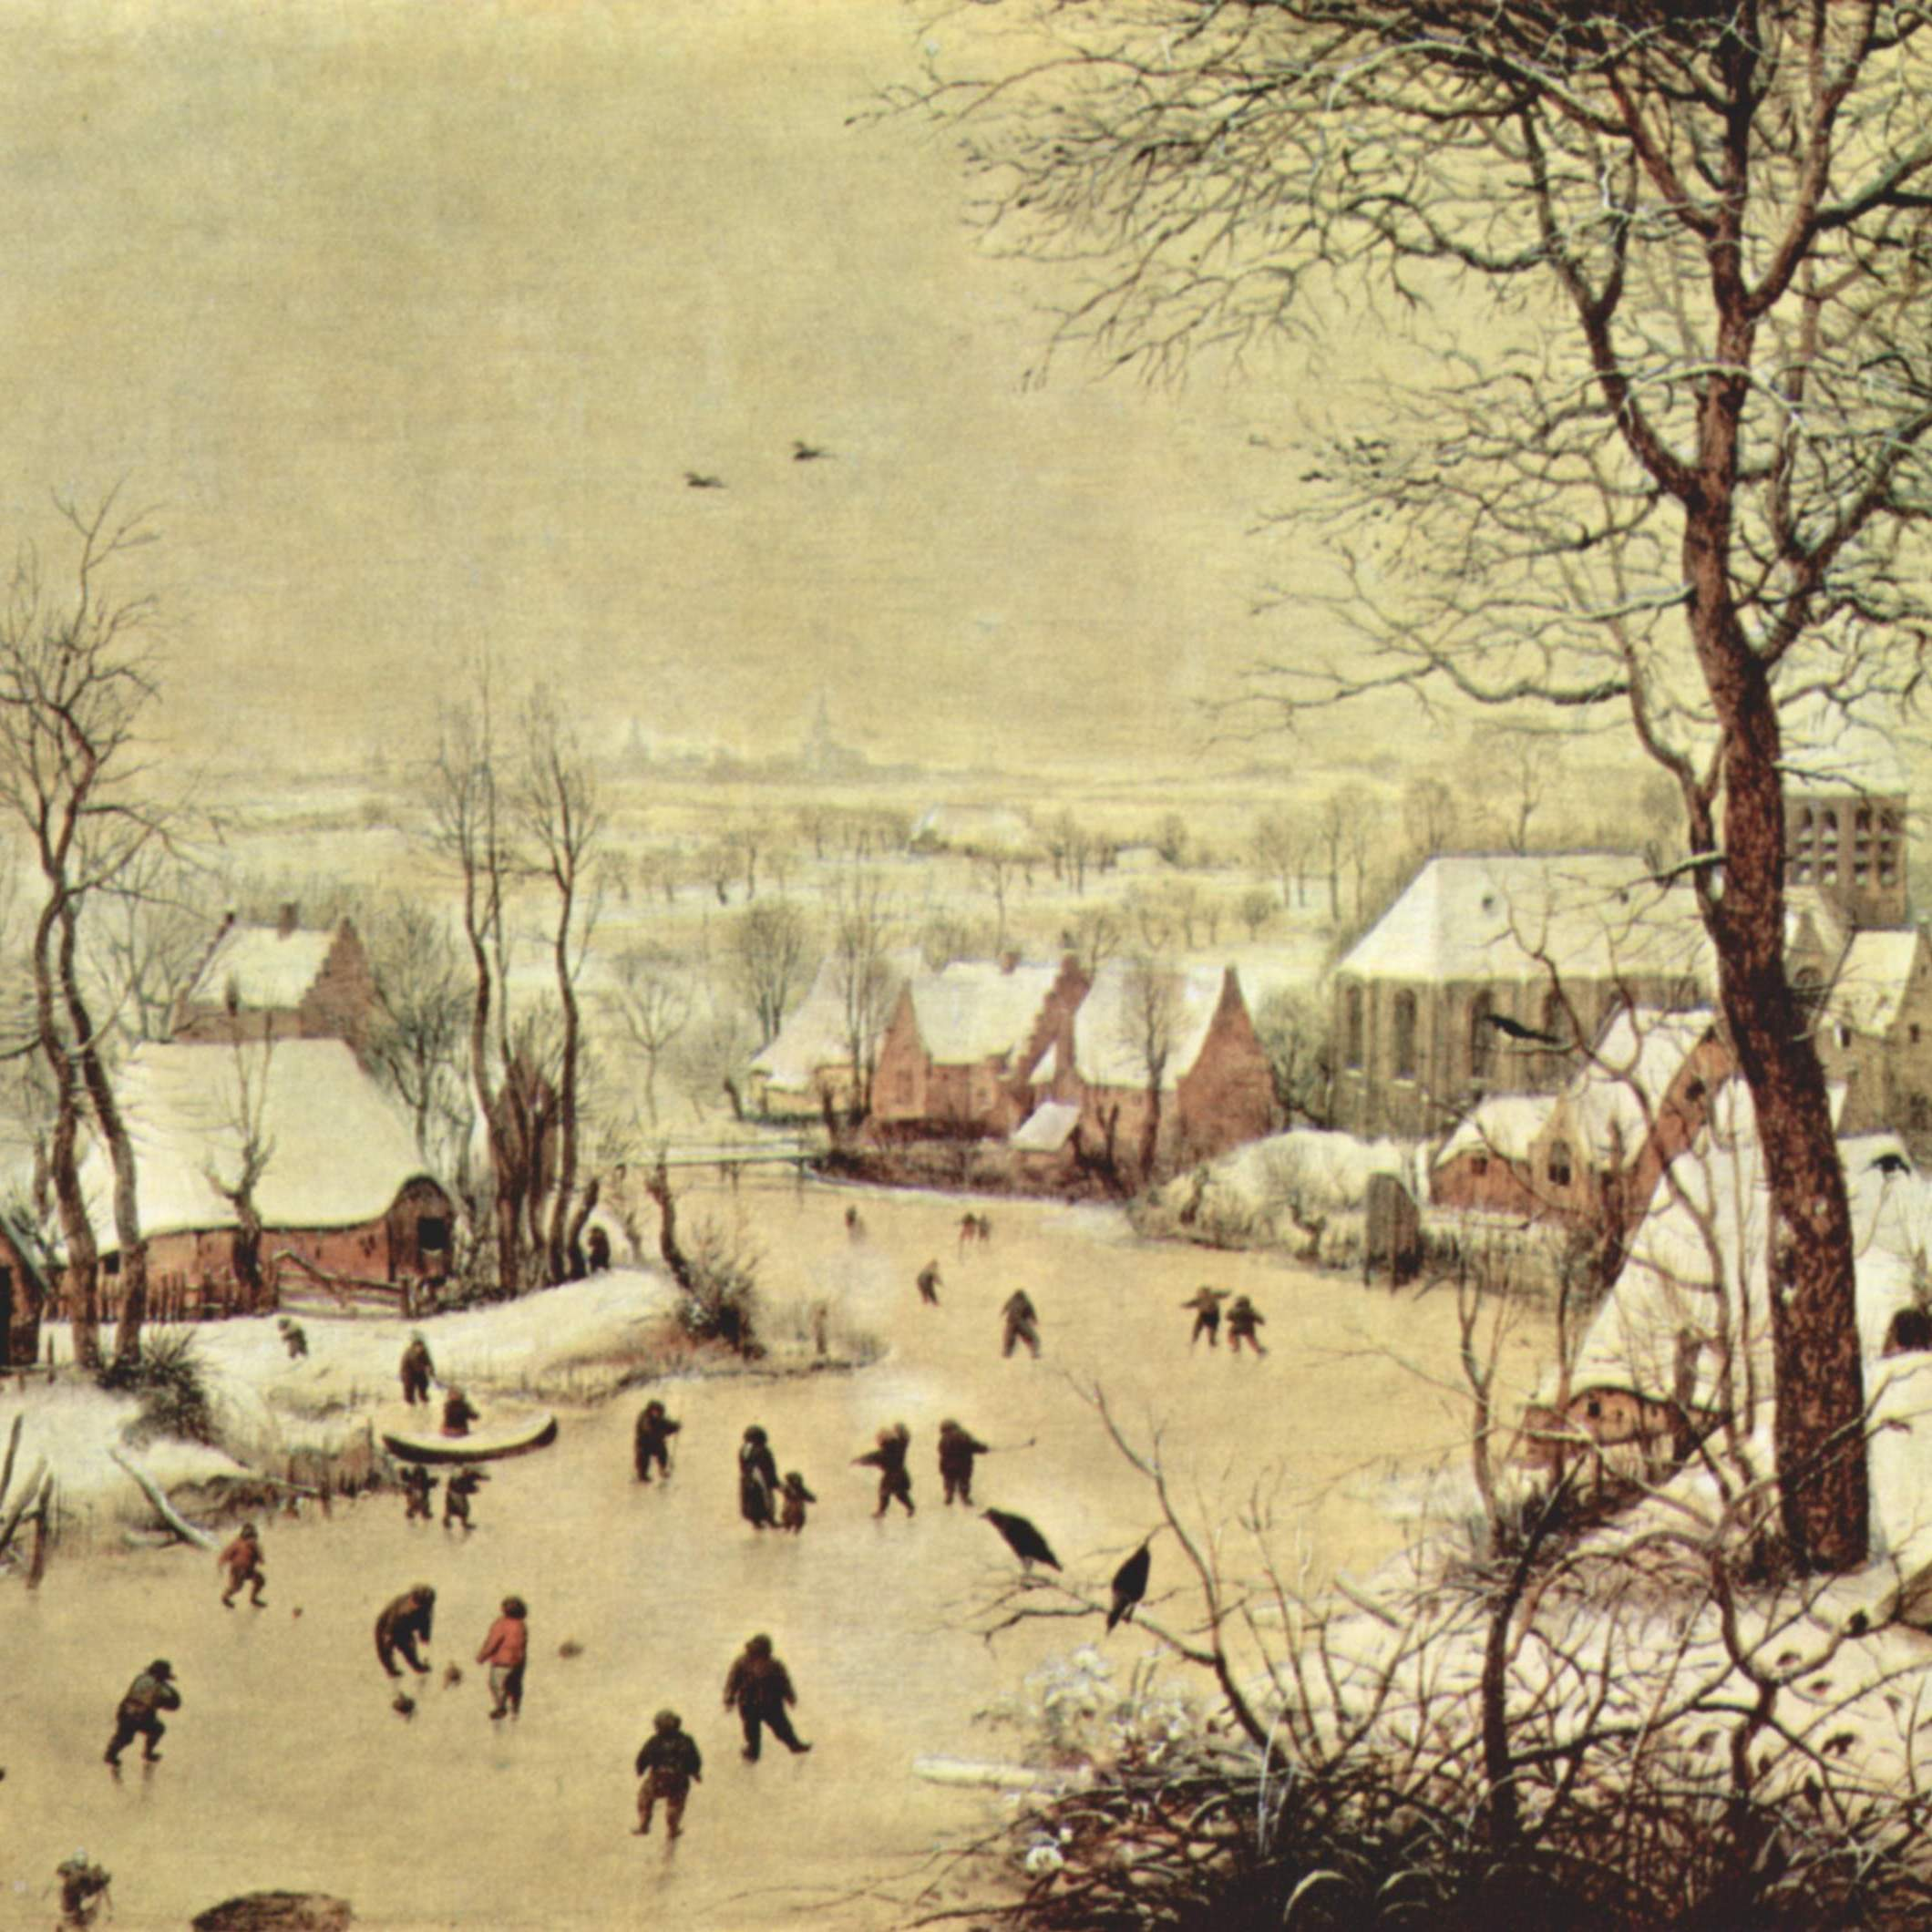 Pieter Bruegel's Winterlandscape with Skaters and Bird Trap, 1565, depicts the snowy, cold winters Europe experienced during the Little Ice Age.